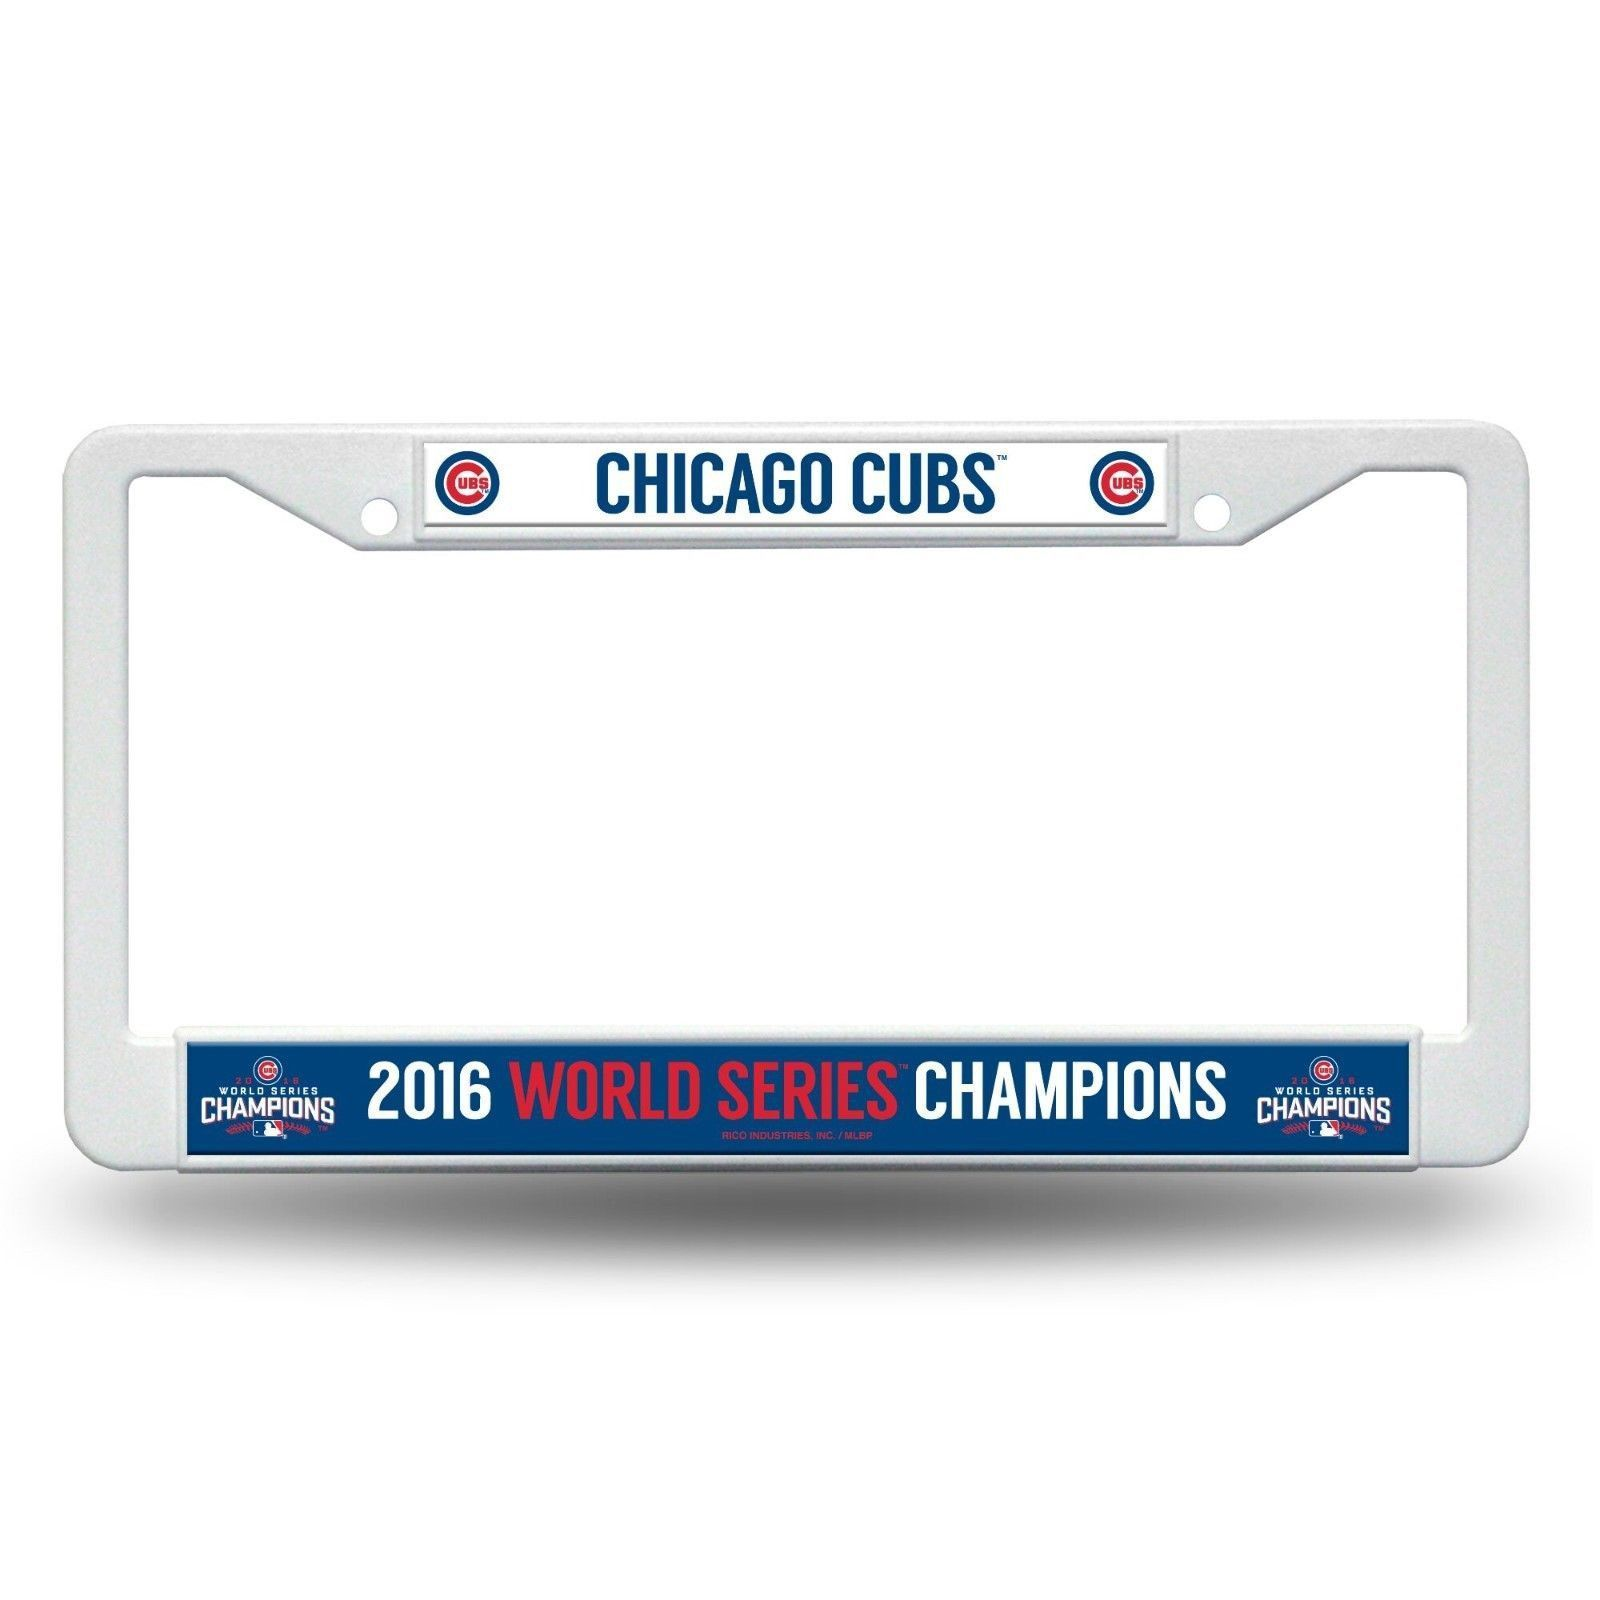 Chicago Cubs 2016 World Series Champions Metal License Plate Frame ...